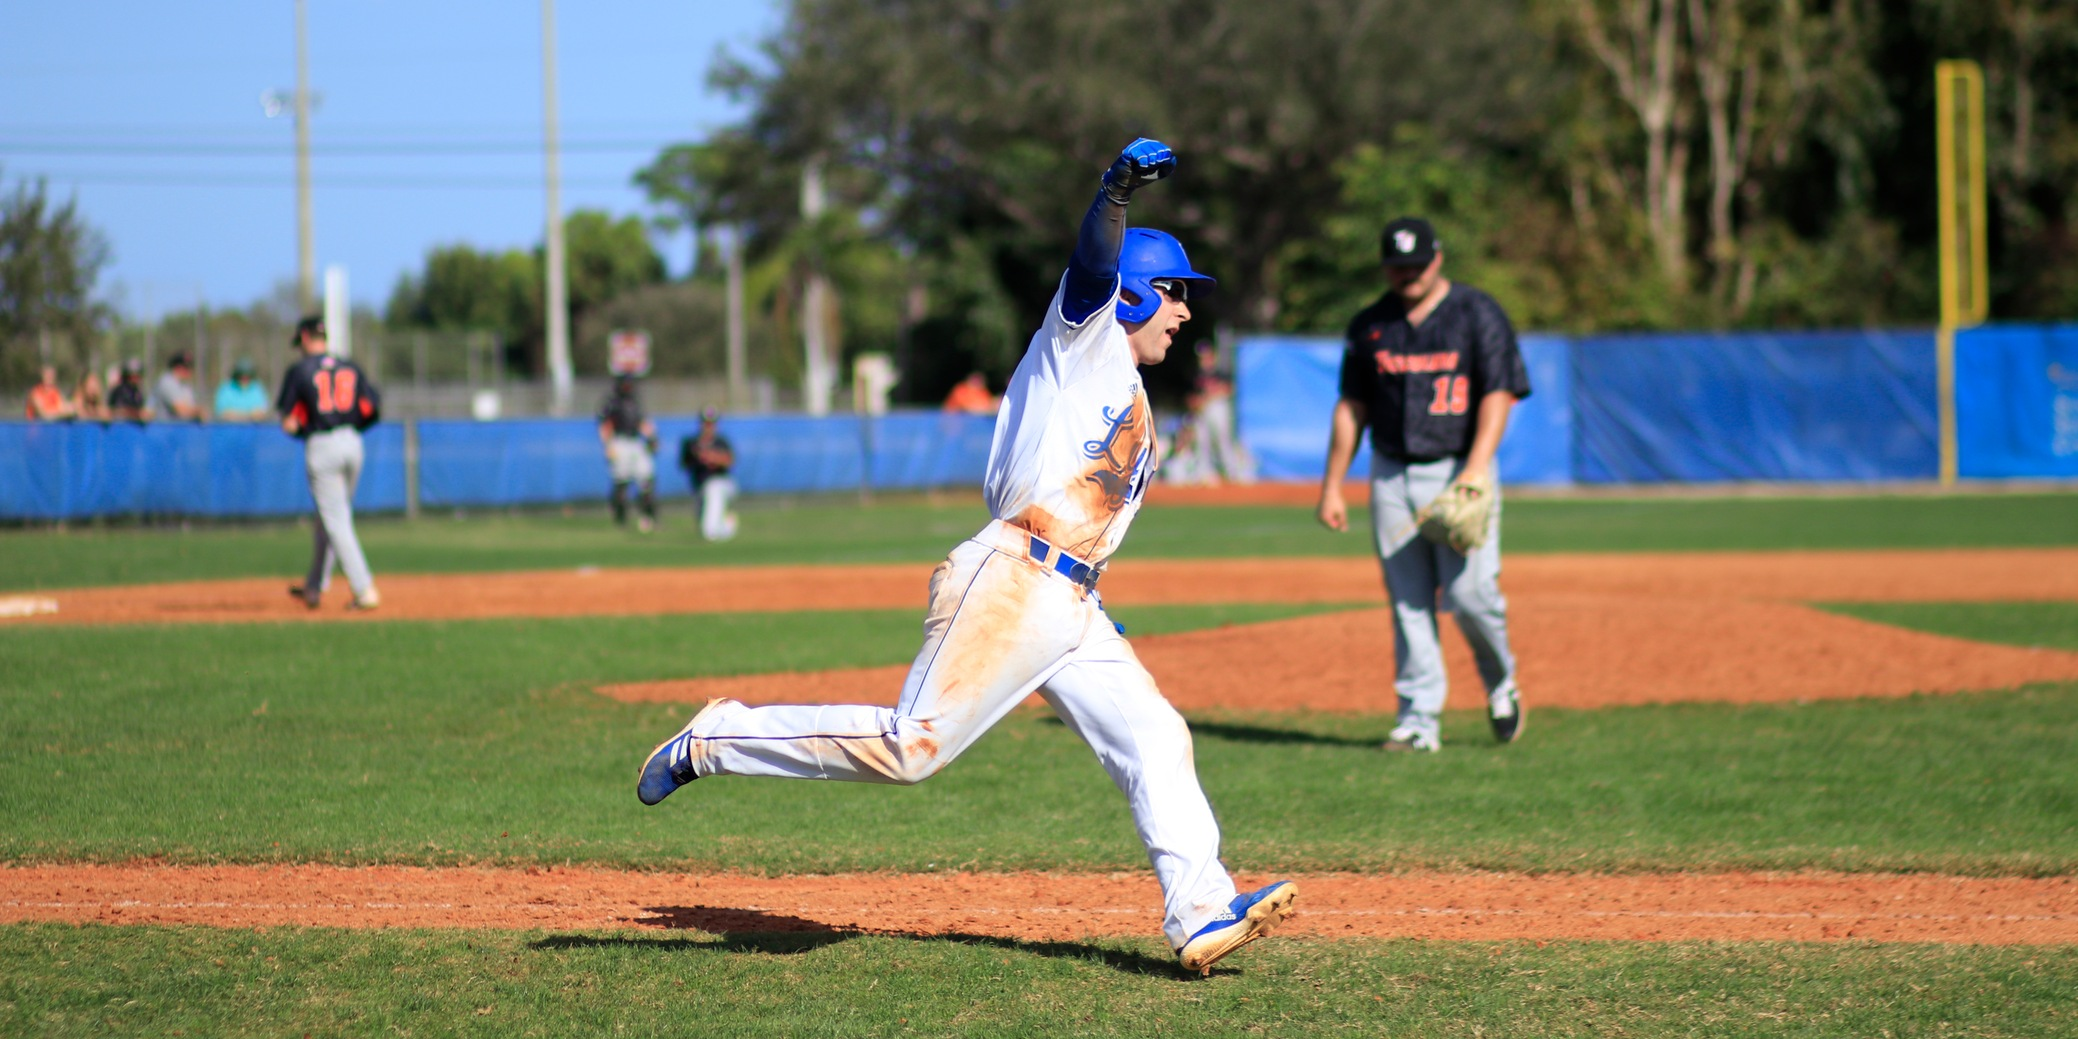 Archer's Walk-Off Single Pushes Baseball Past Pioneers